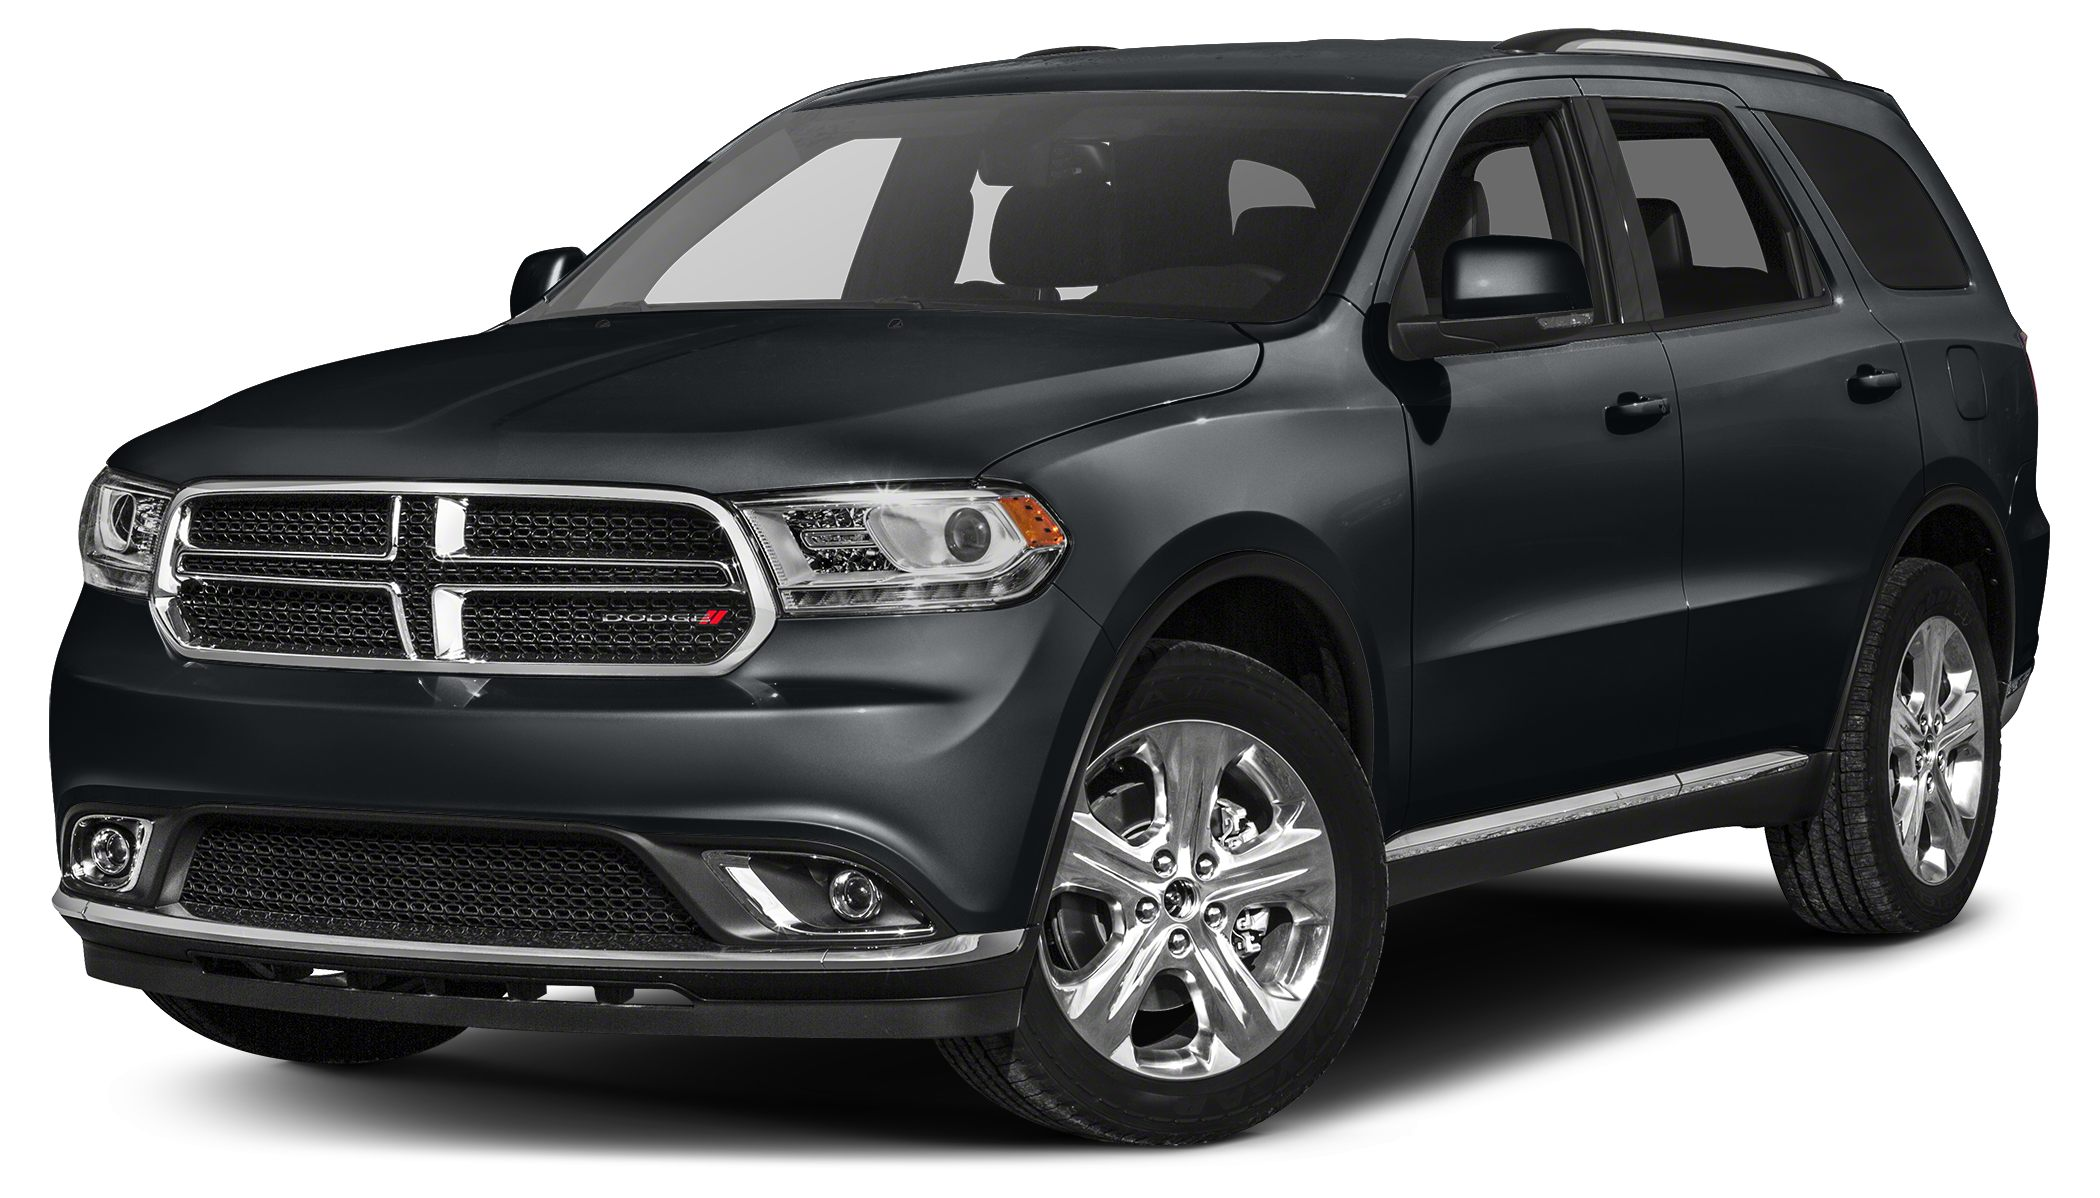 2015 Dodge Durango Limited Limited trim EPA 24 MPG Hwy17 MPG City CARFAX 1-Owner Heated Leathe